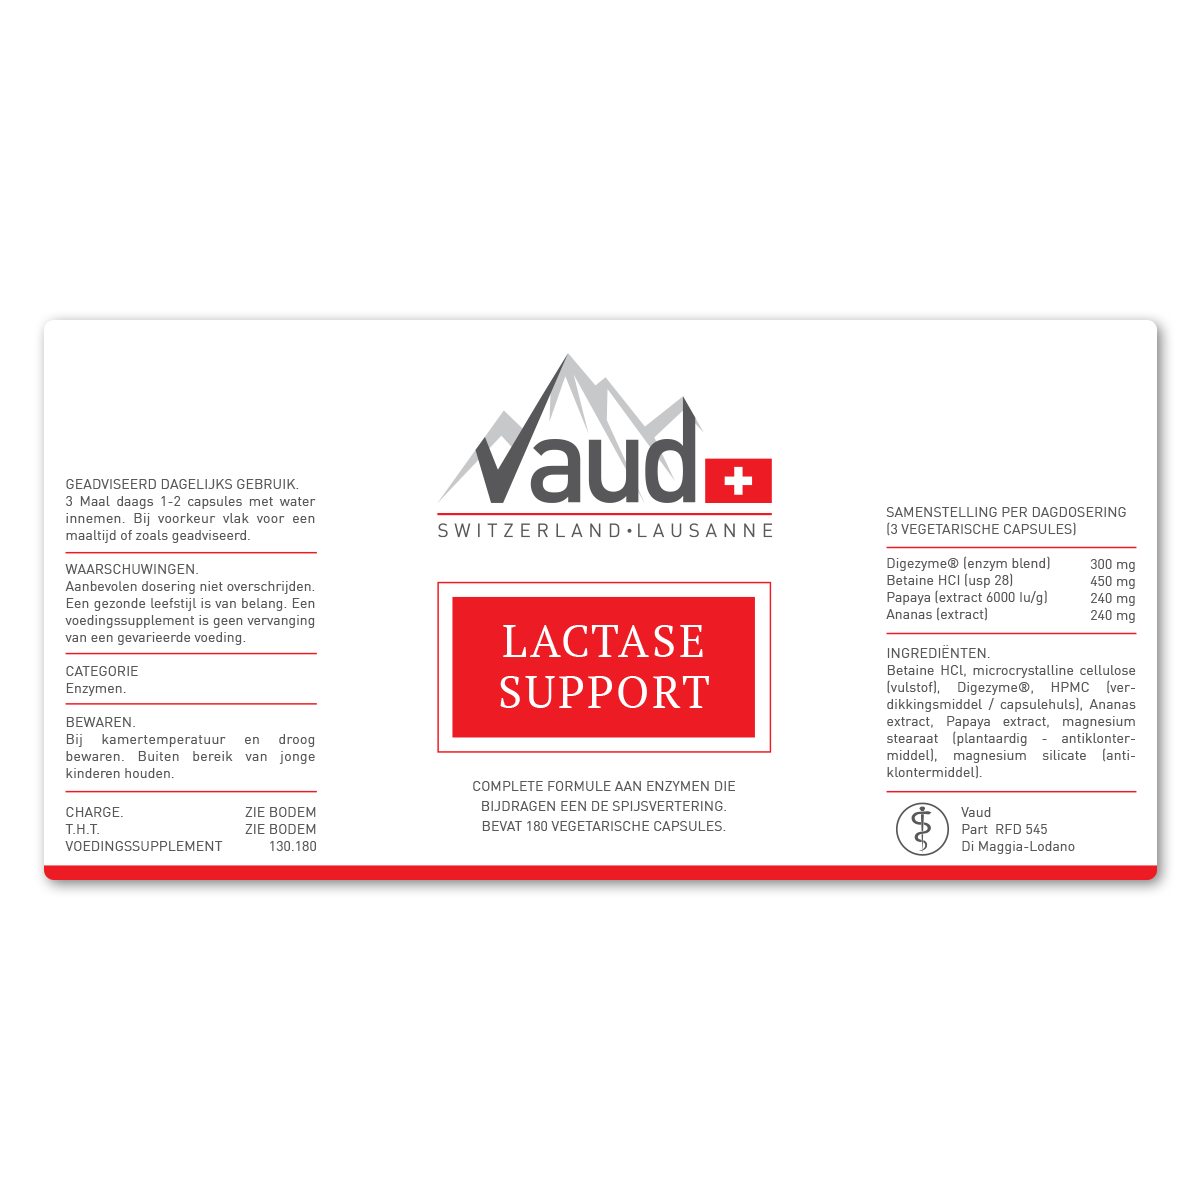 lactase-support-vaud